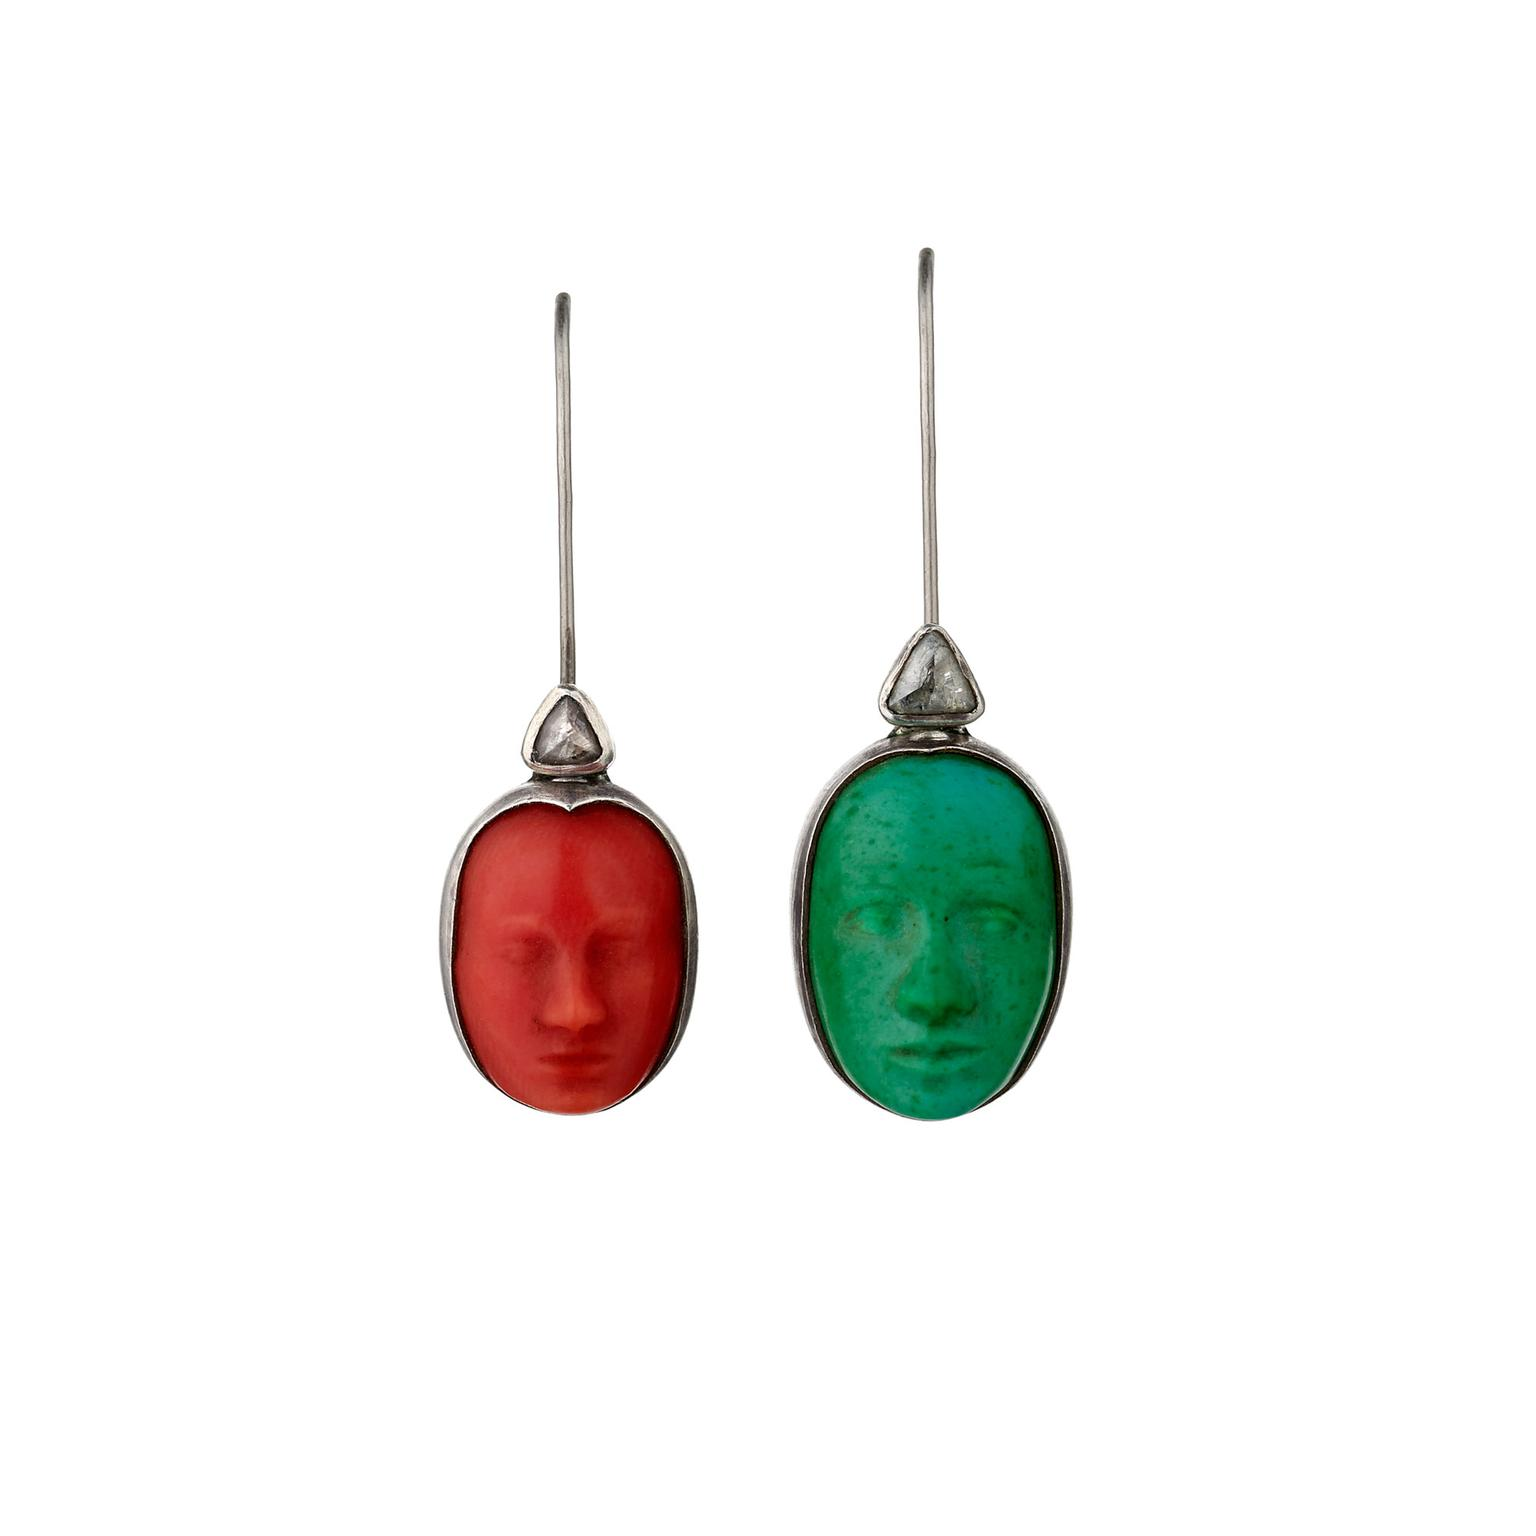 Charlotte De Syllas coral, turquoise and rough diamond earrings